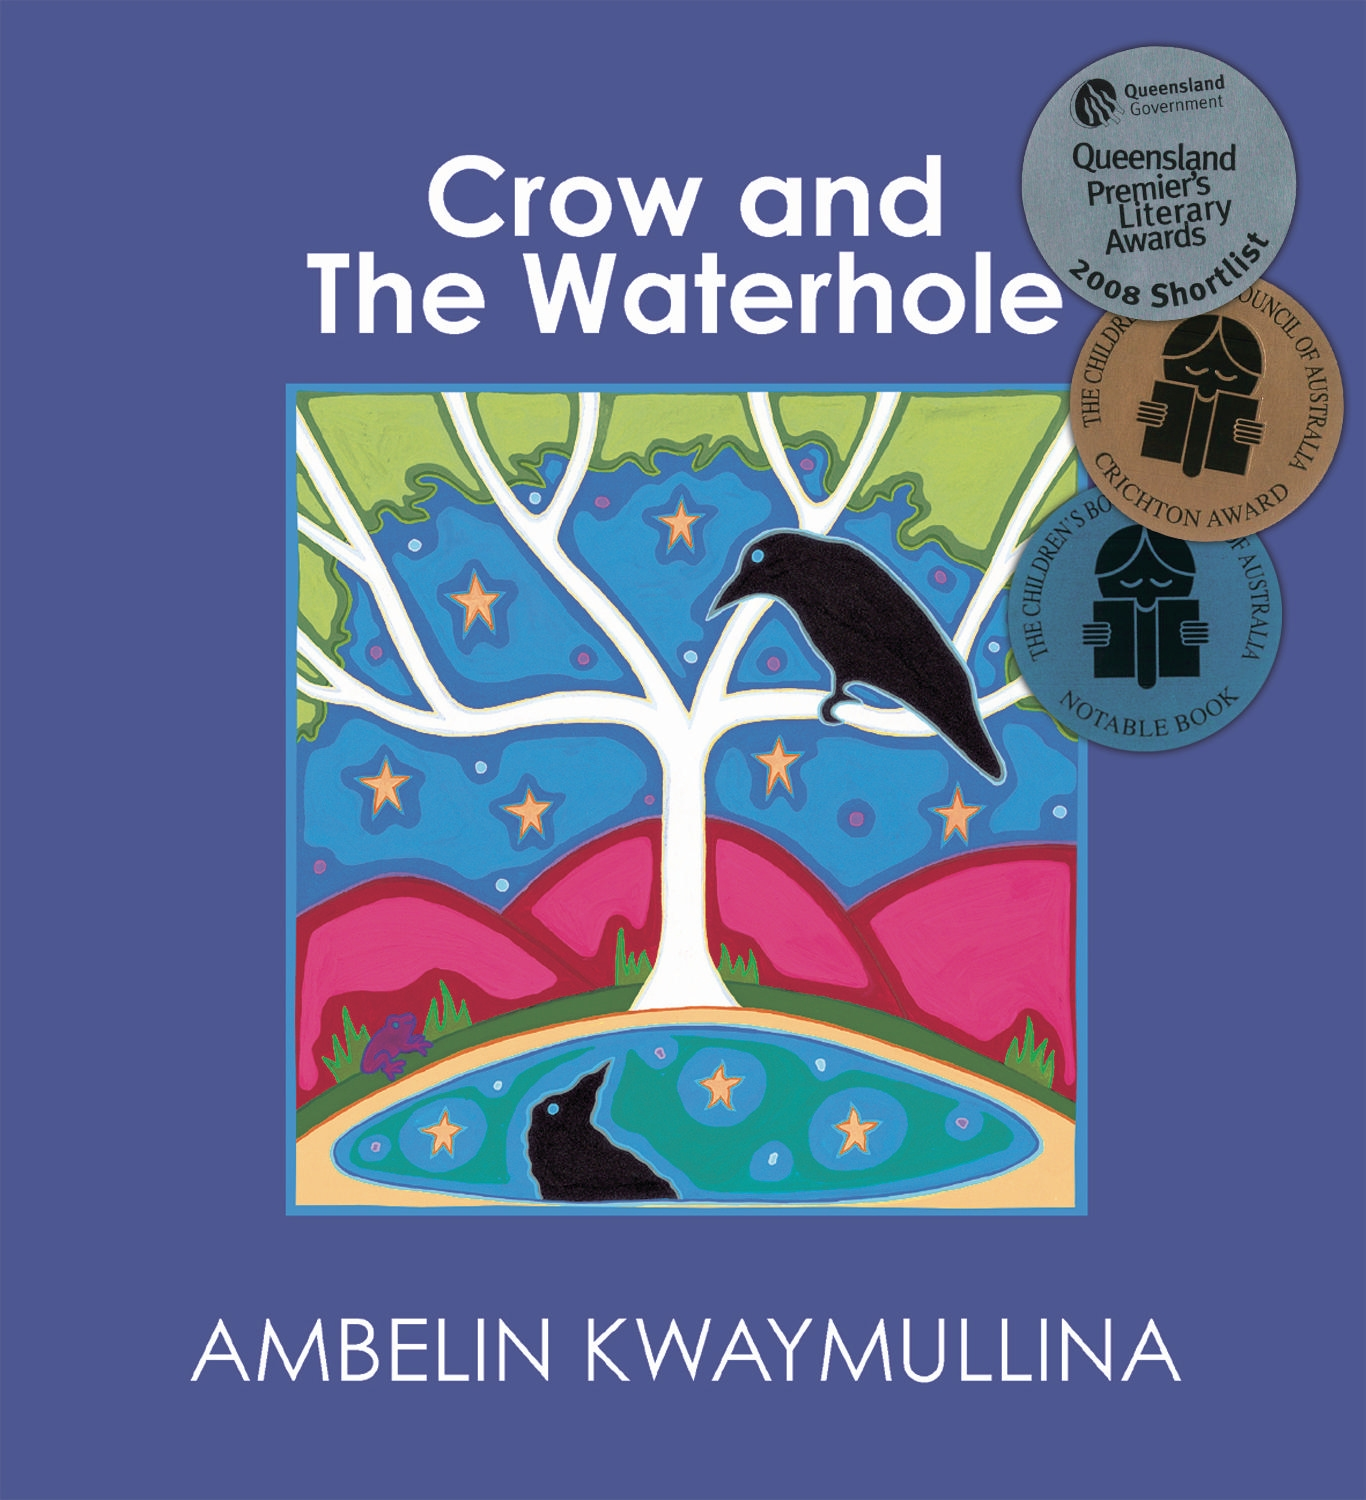 Crow and The Waterhole by Kwaymullina Ambelin, ISBN: 9781921696824